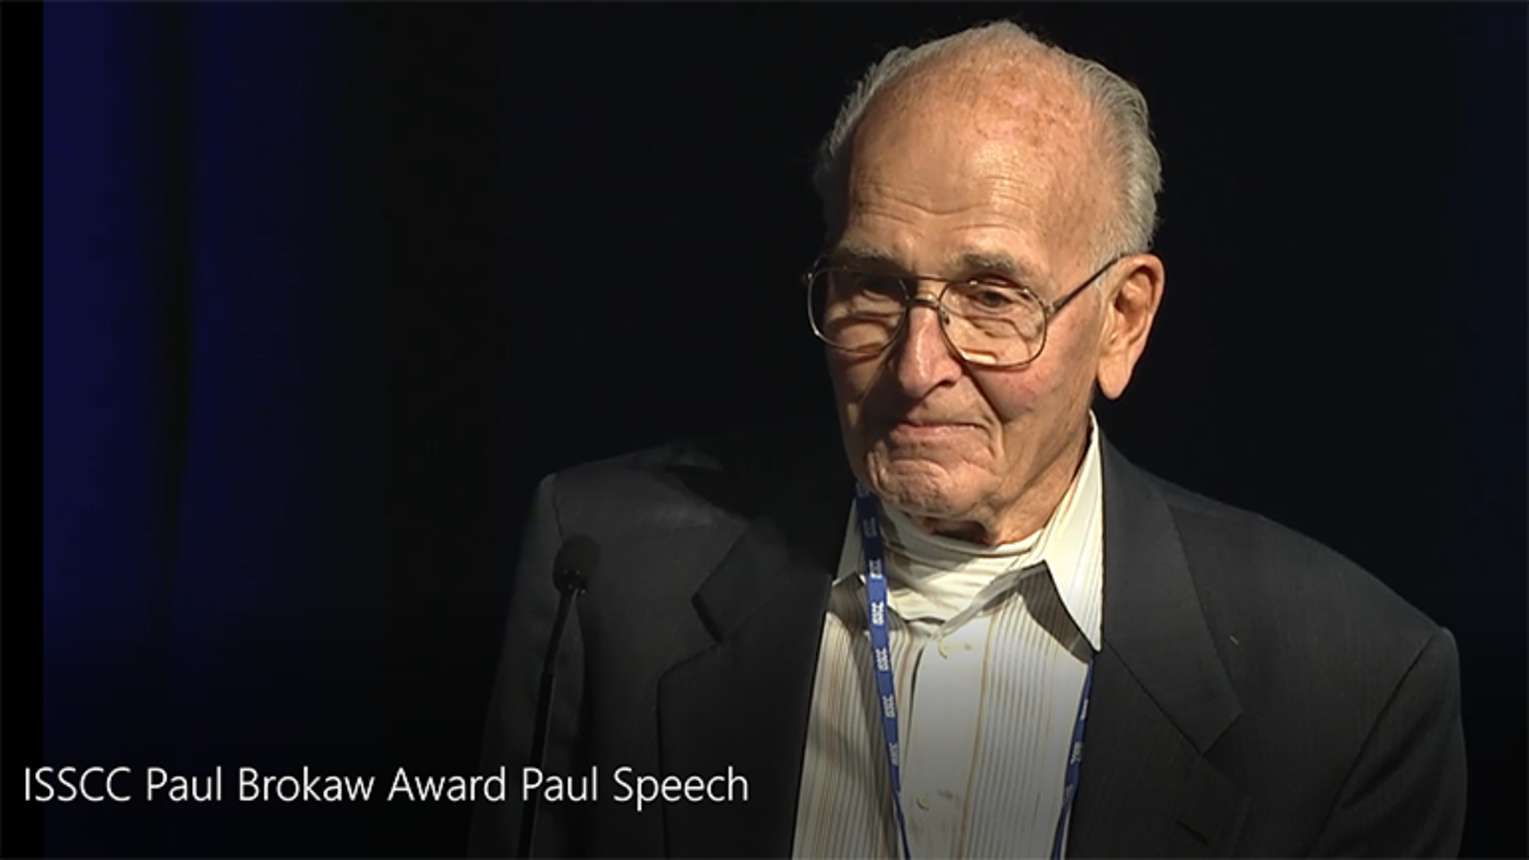 ISSCC Paul Brokaw Award - Full Speech